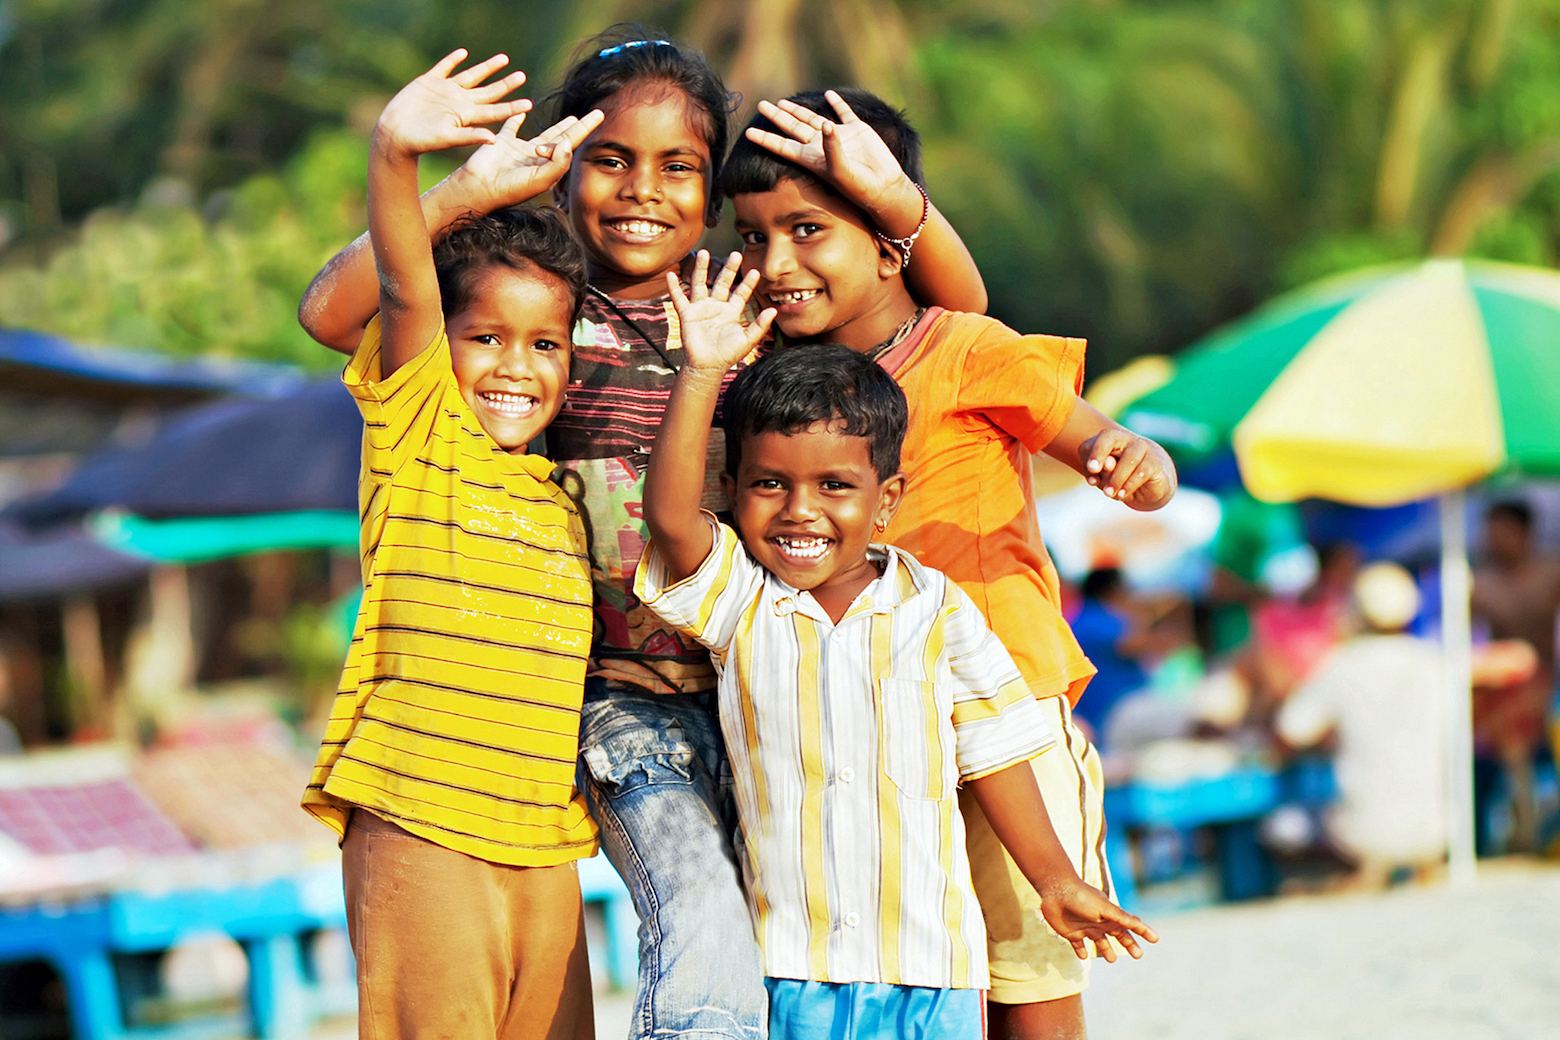 New research shows that the country of India has avoided roughly 1 million child deaths for children under the age of five since 2005.